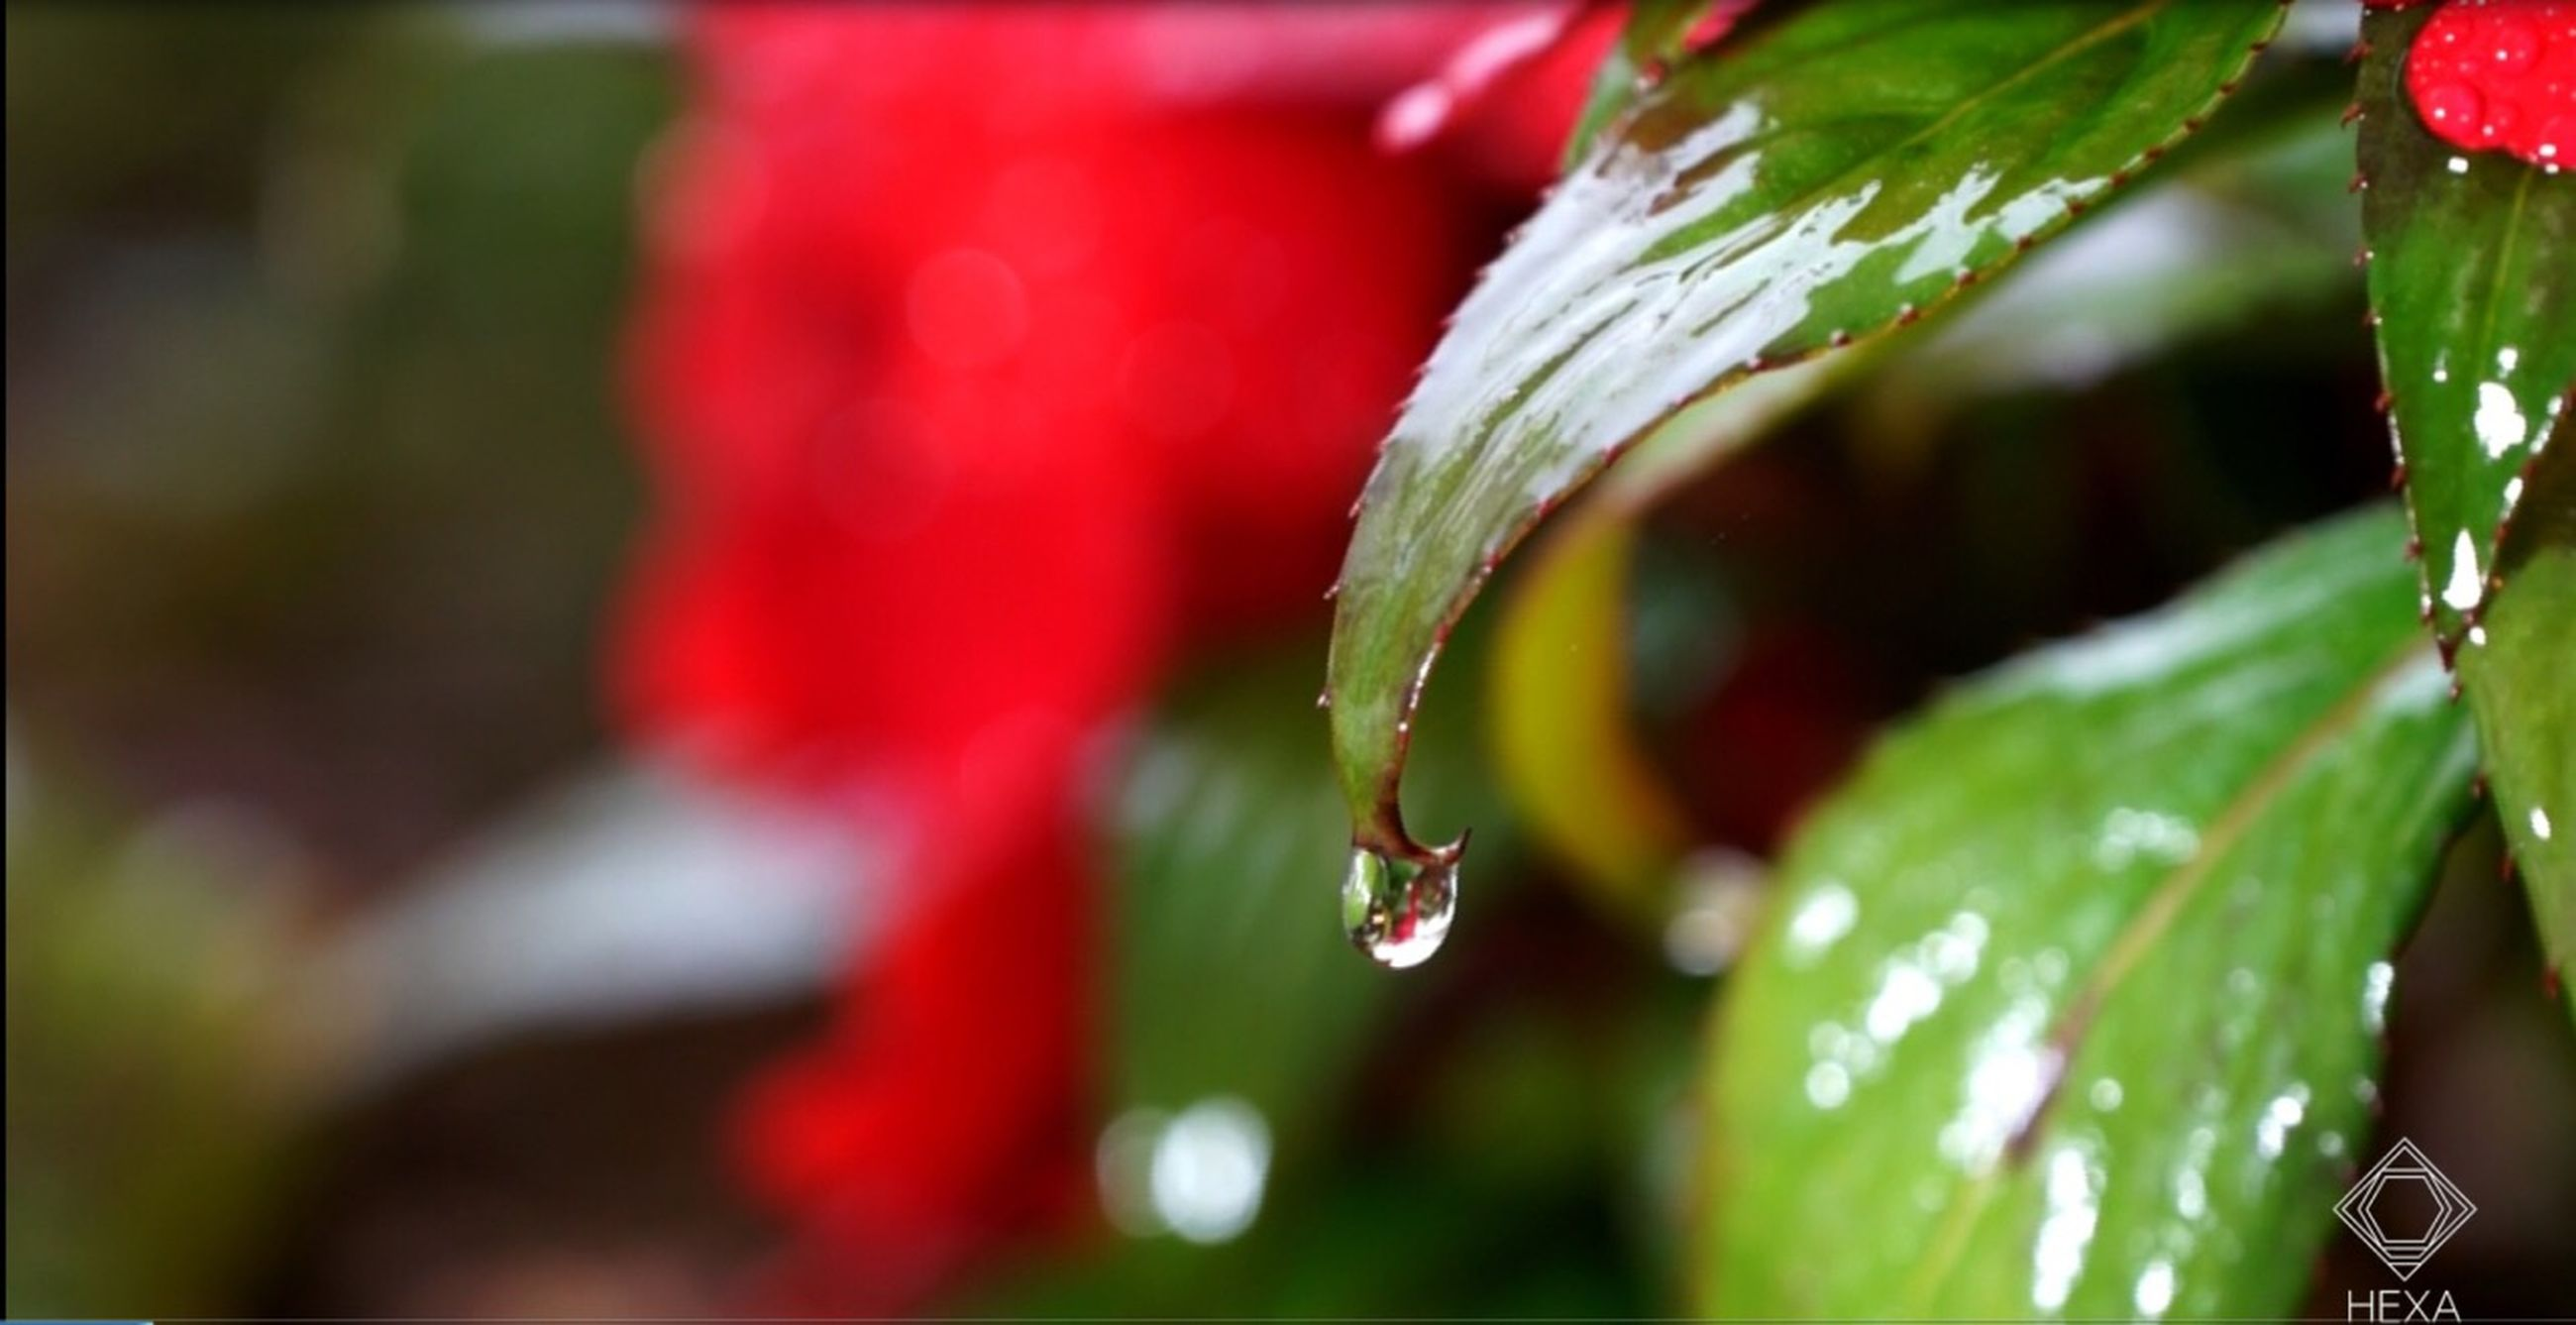 close-up, freshness, growth, drop, red, wet, leaf, focus on foreground, water, beauty in nature, plant, green color, fragility, nature, dew, selective focus, stem, bud, day, flower